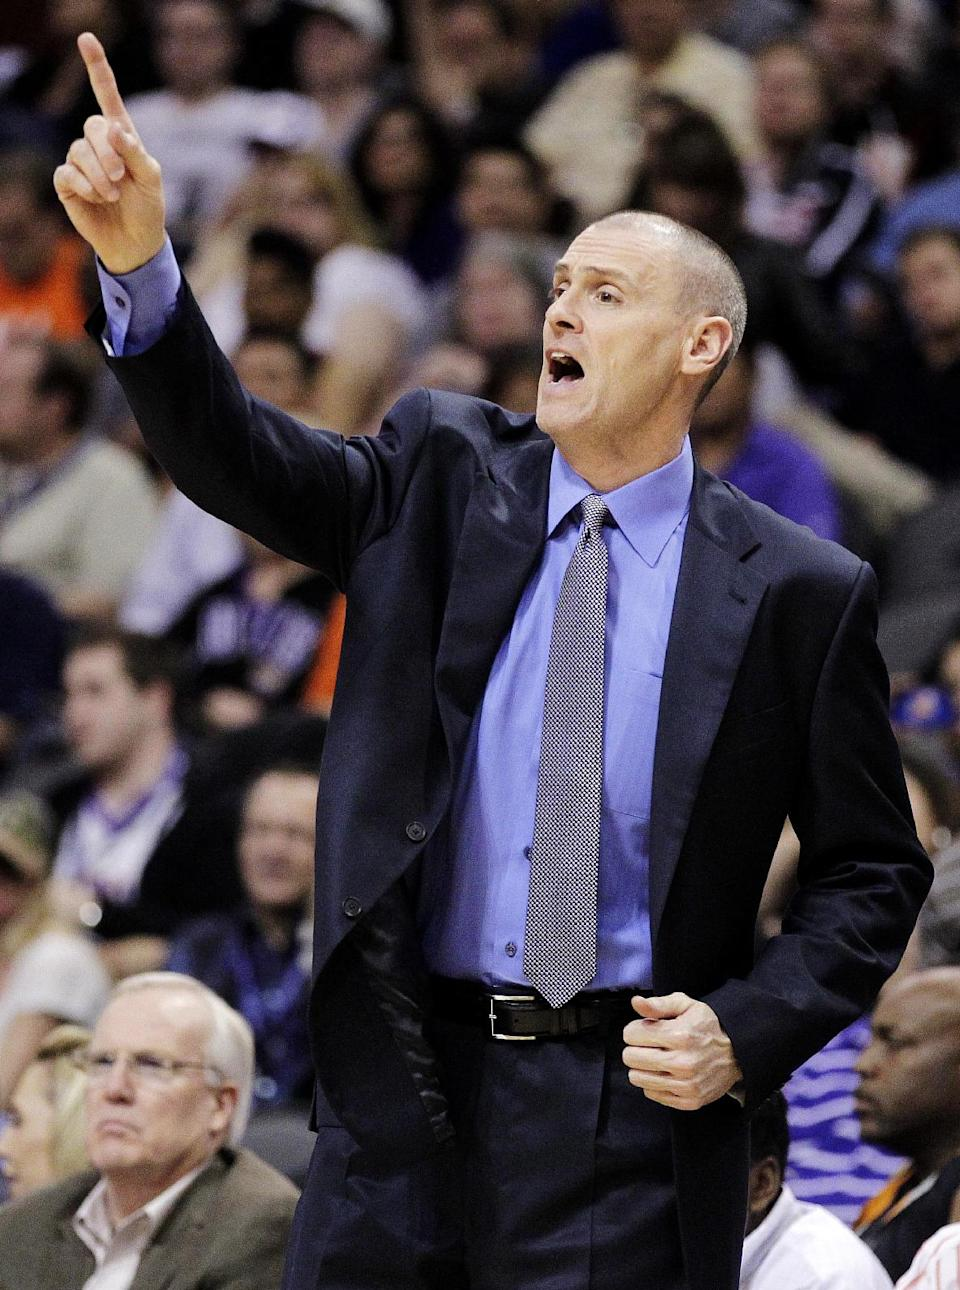 Dallas Mavericks head coach Rick Carlisle calls a play against the Phoenix Suns during the first half of an NBA basketball game, Thursday, Dec. 6, 2012, in Phoenix. (AP Photo/Matt York)